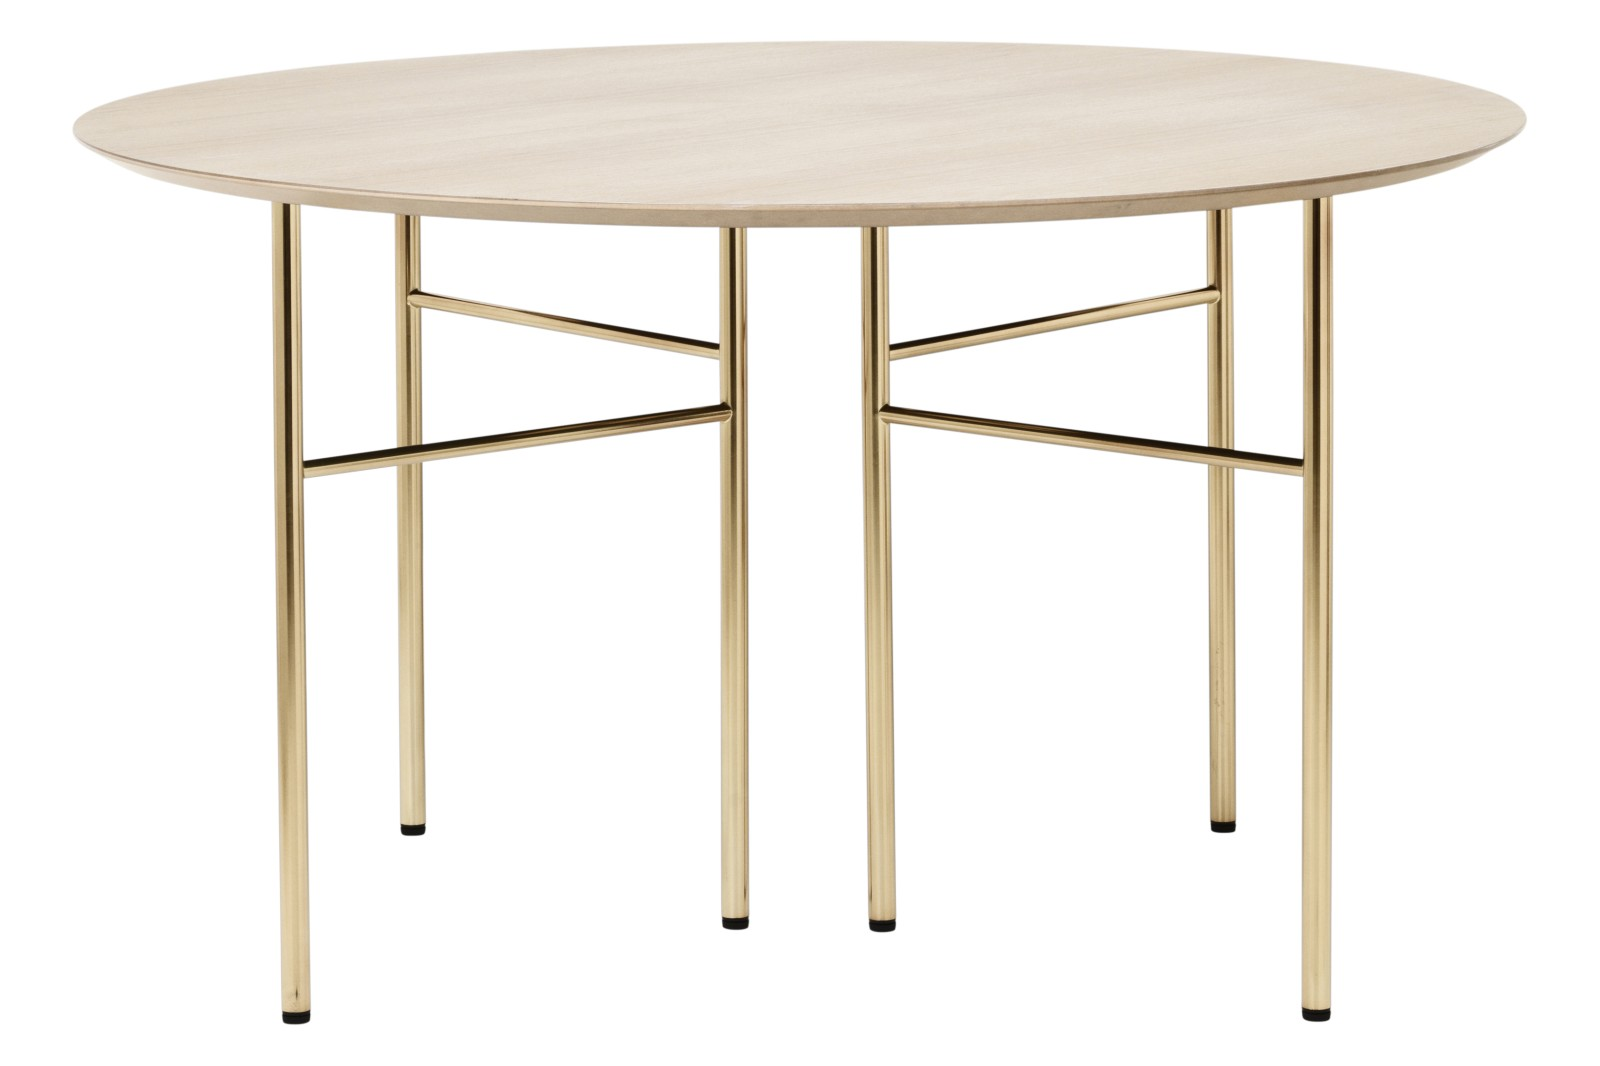 Mingle Round Dining Table Natural Oak, Mingle Table Legs W68 - Brass (Set of 2)